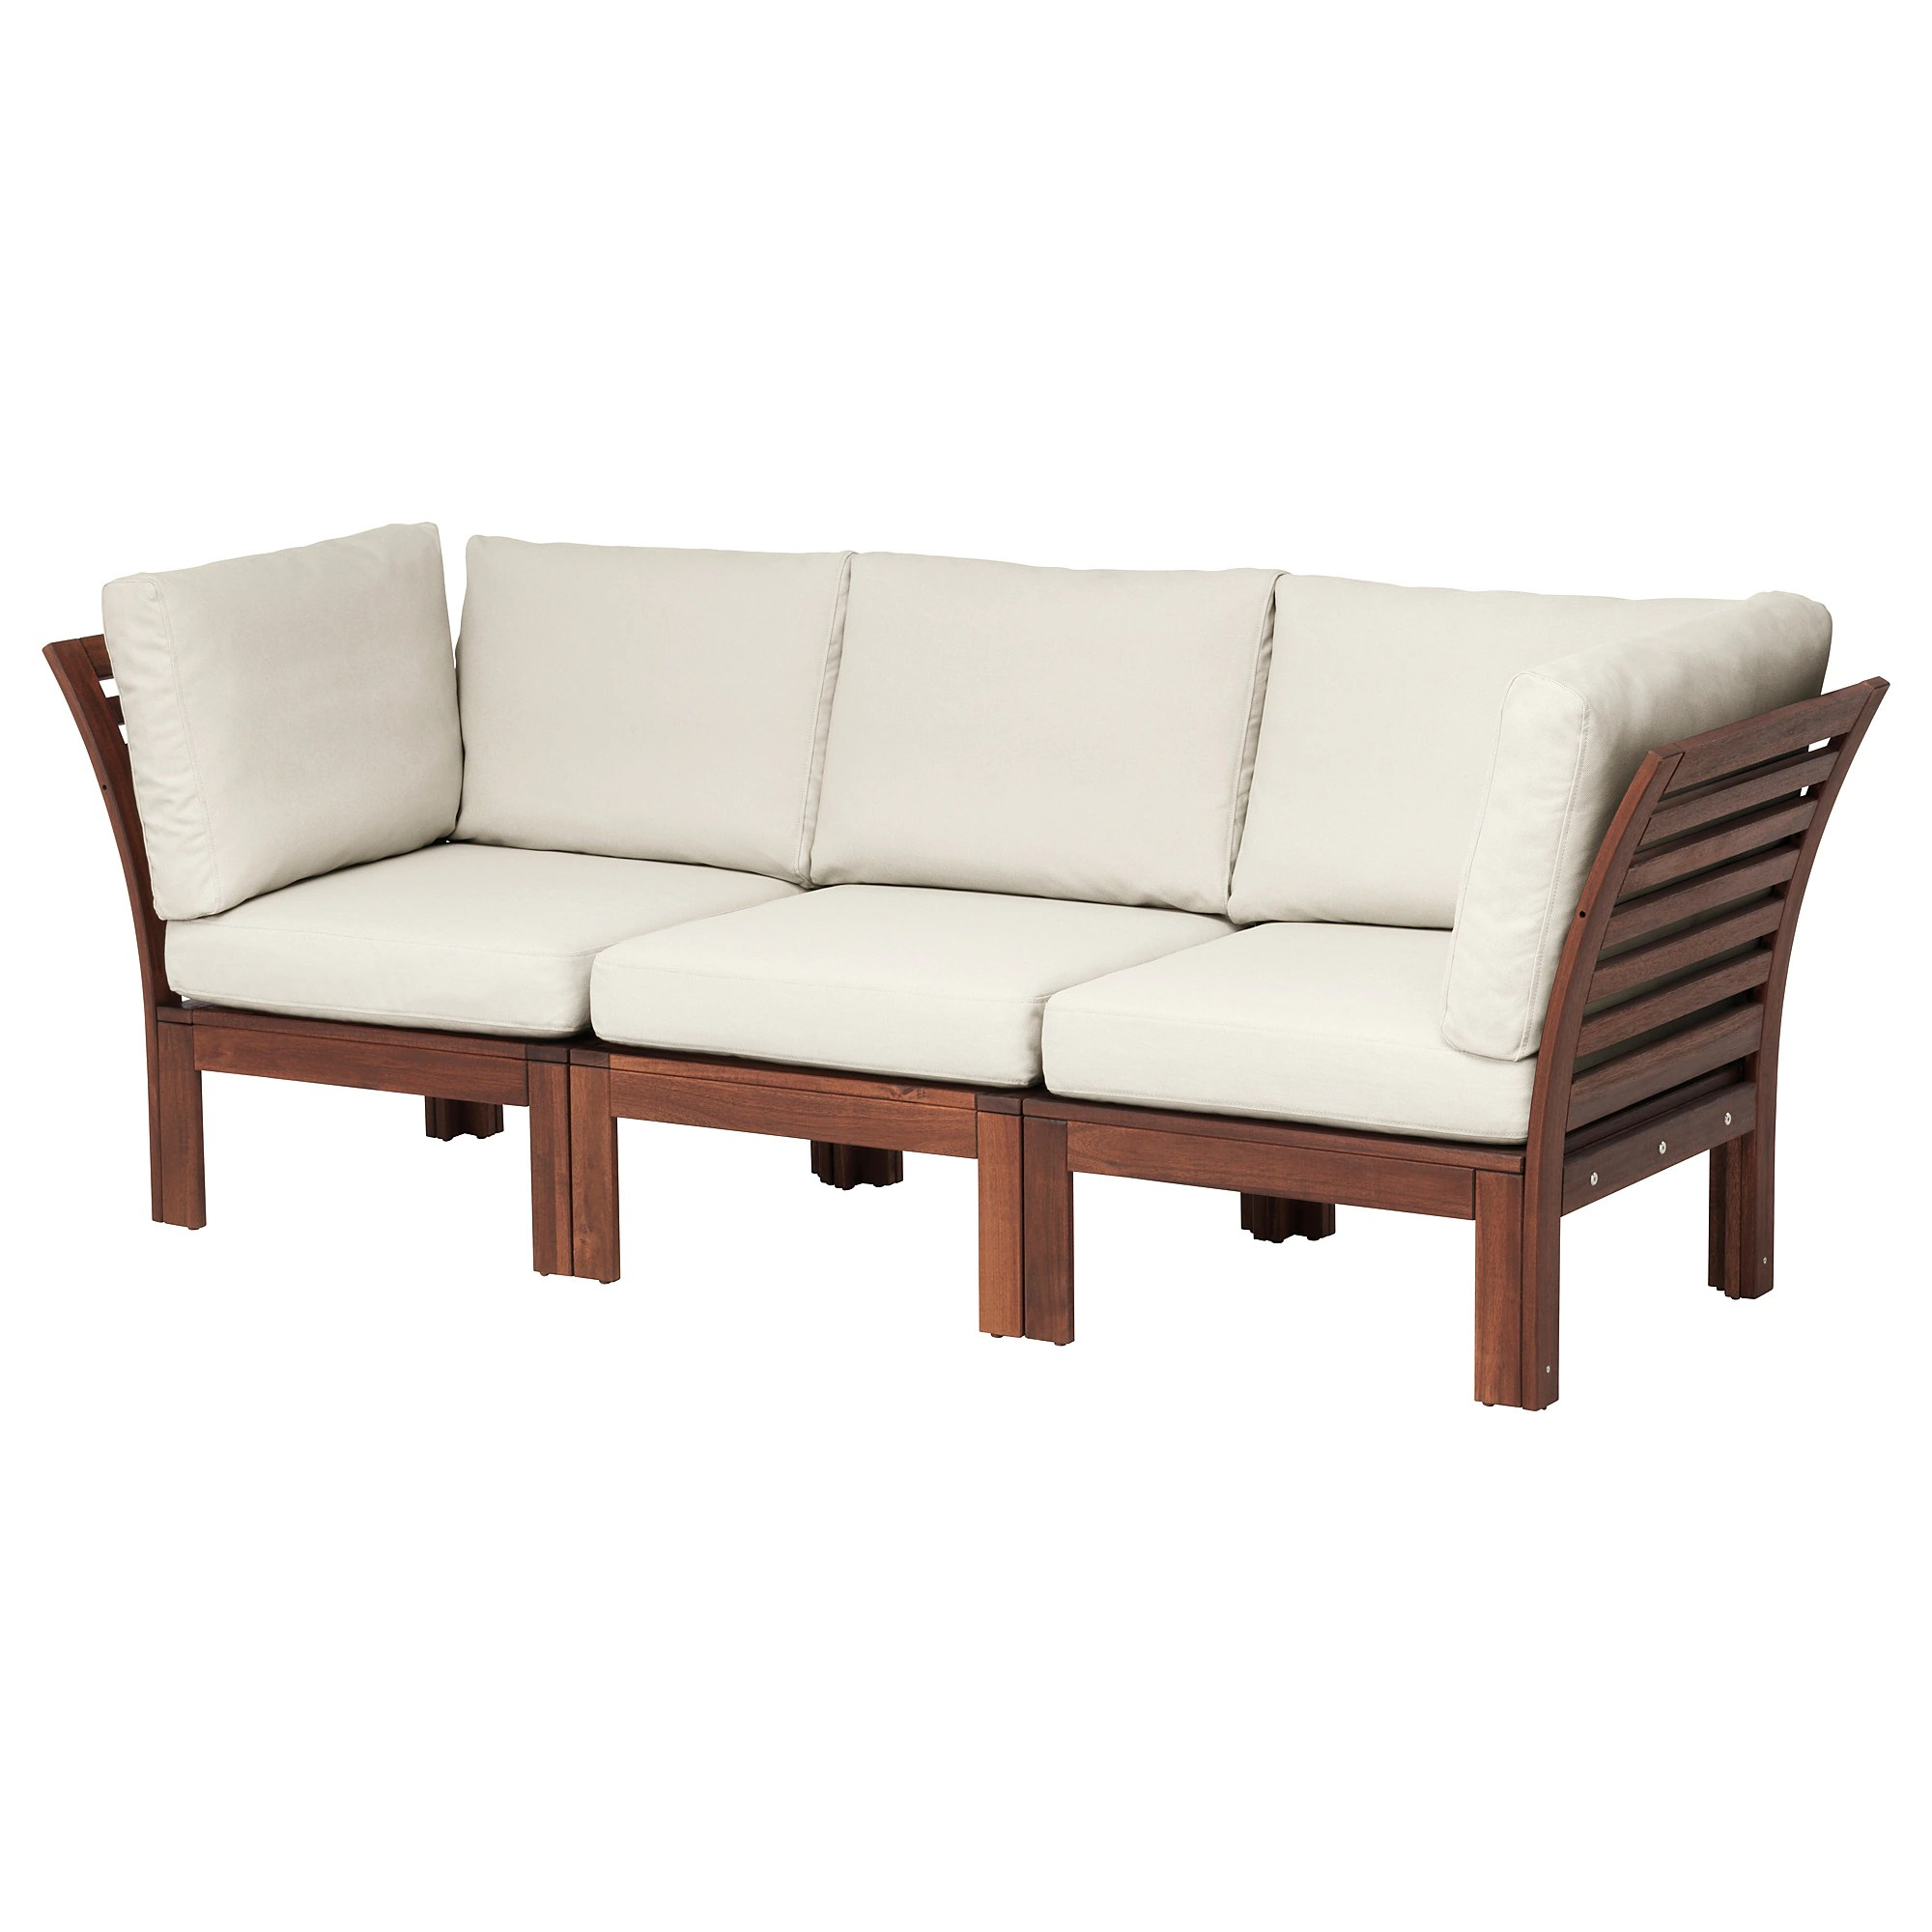 Outdoor Sofa ÄpplarÖ 3 Seat Modular Sofa Outdoor Brown Brown Stained Hållö Beige Beige